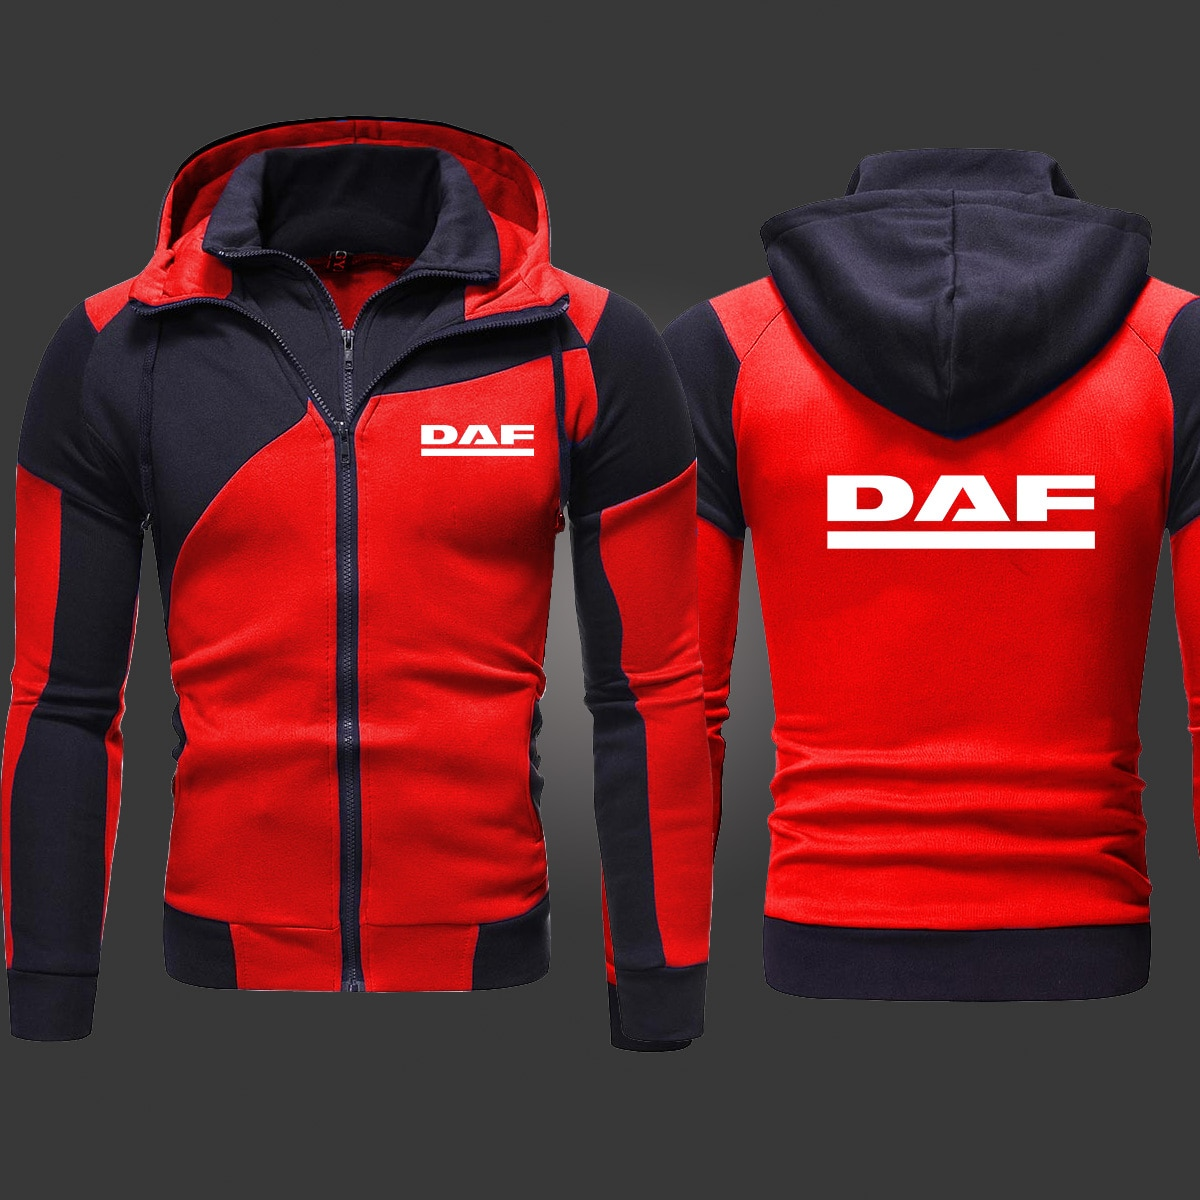 2021 New DAF Mens Fashion Outwear Jacket Zipper Hooded Hoody Harajuku Athletic Wear Casual Hoodies S-3XL  - buy with discount